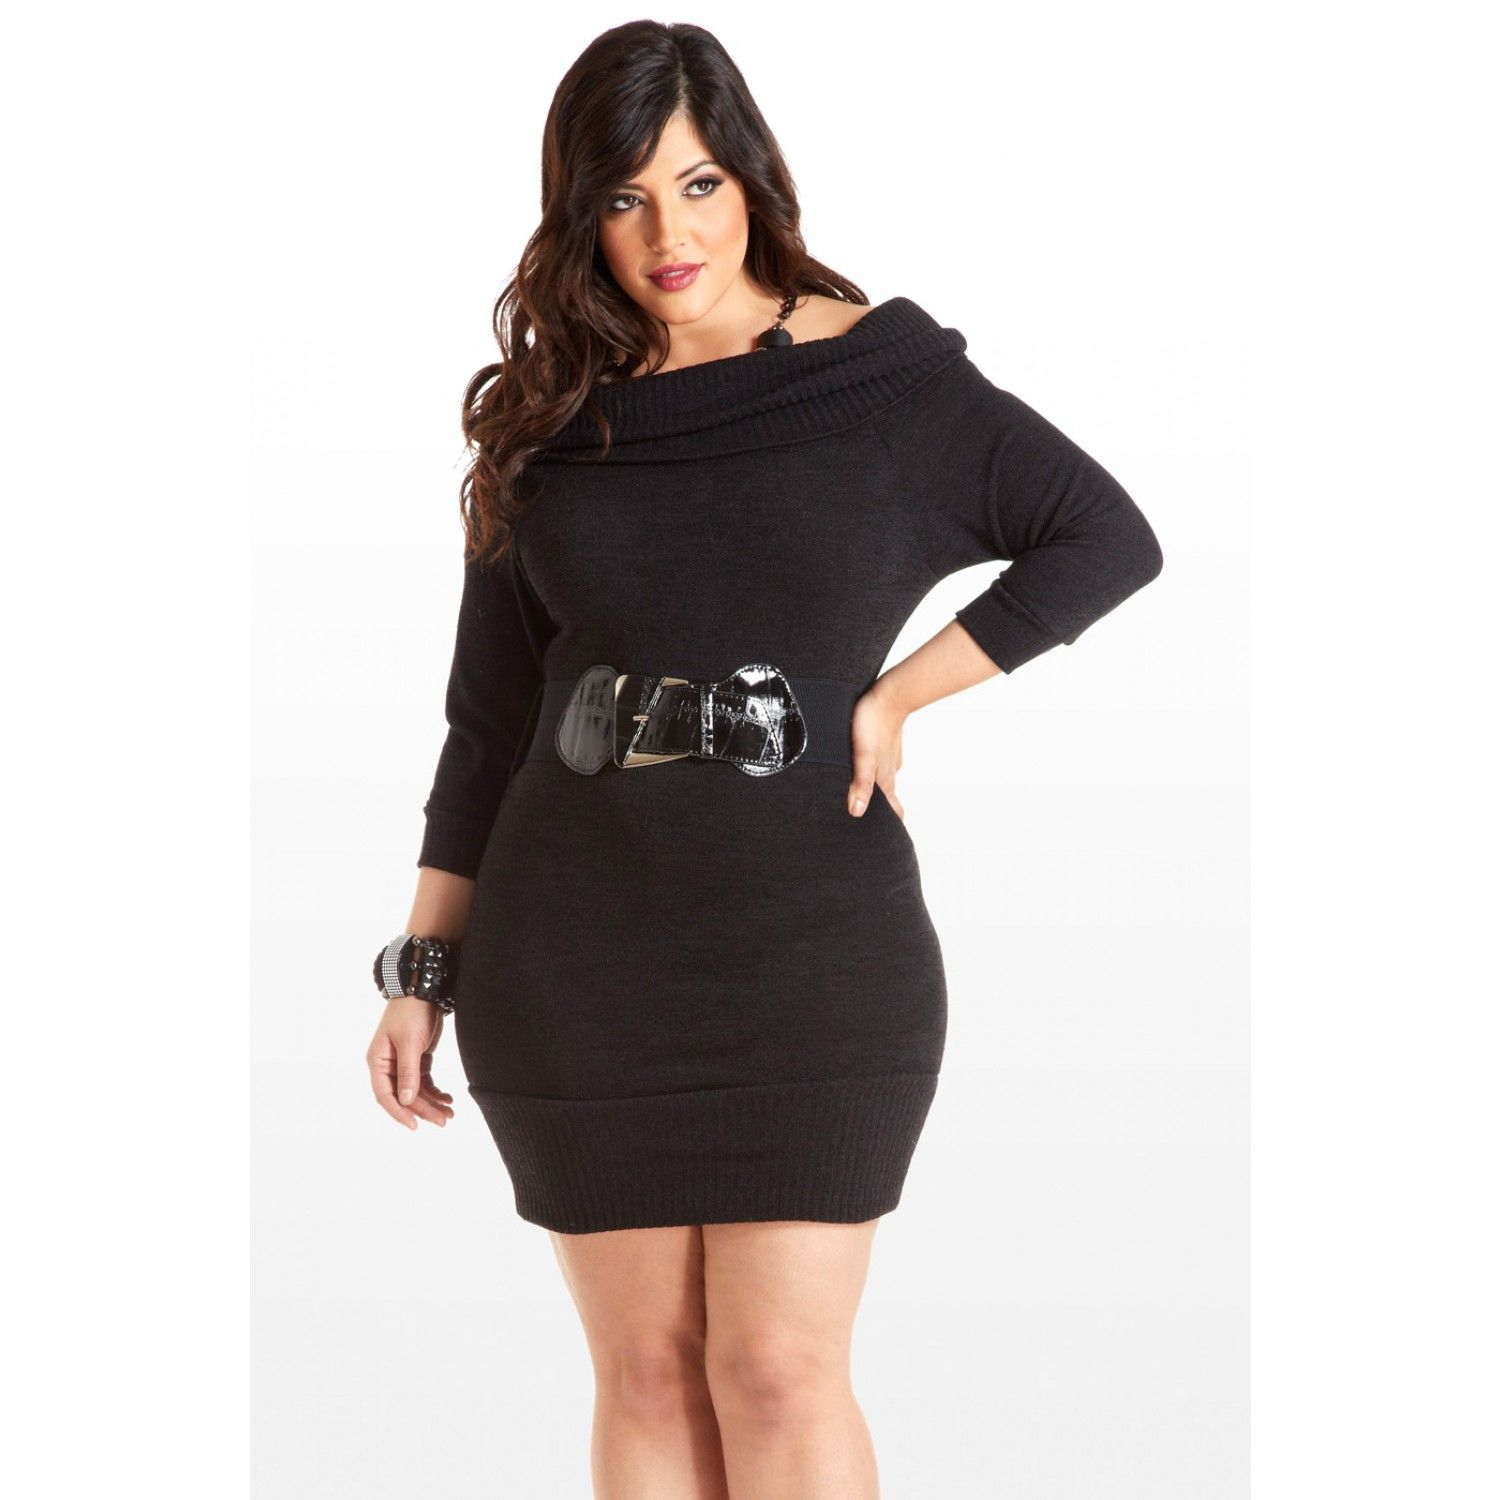 bateau sweater dress $38.00 | clothes in style | pinterest